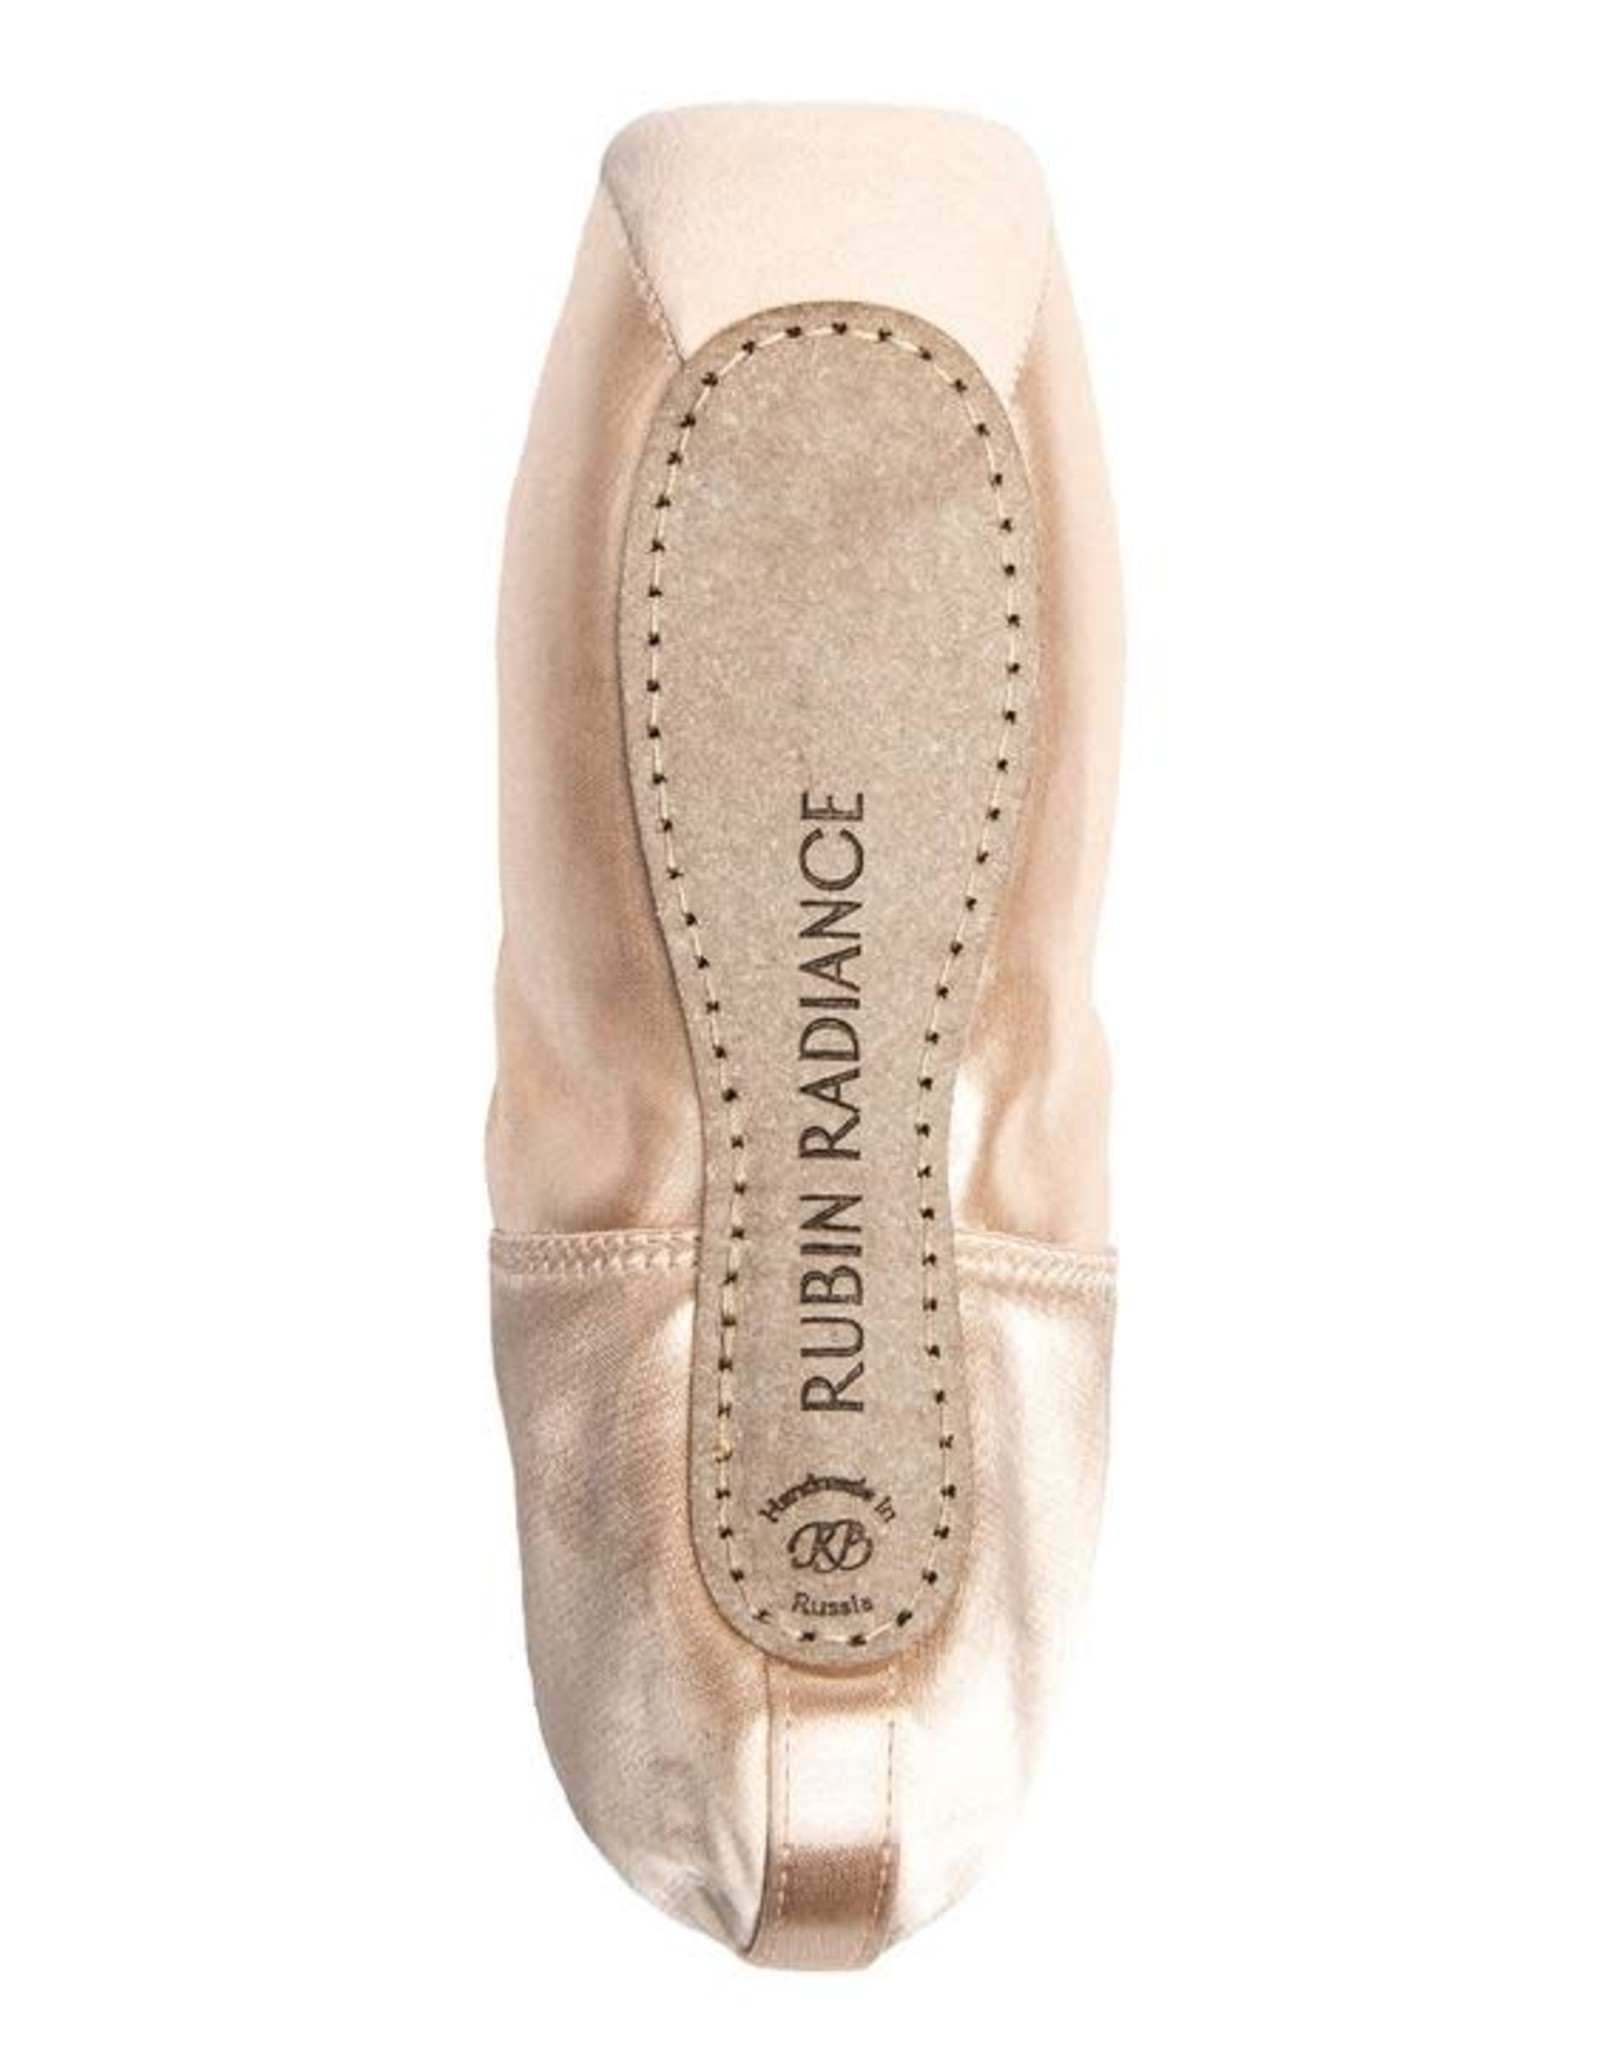 Russian Pointe Russian Pointe Radiance